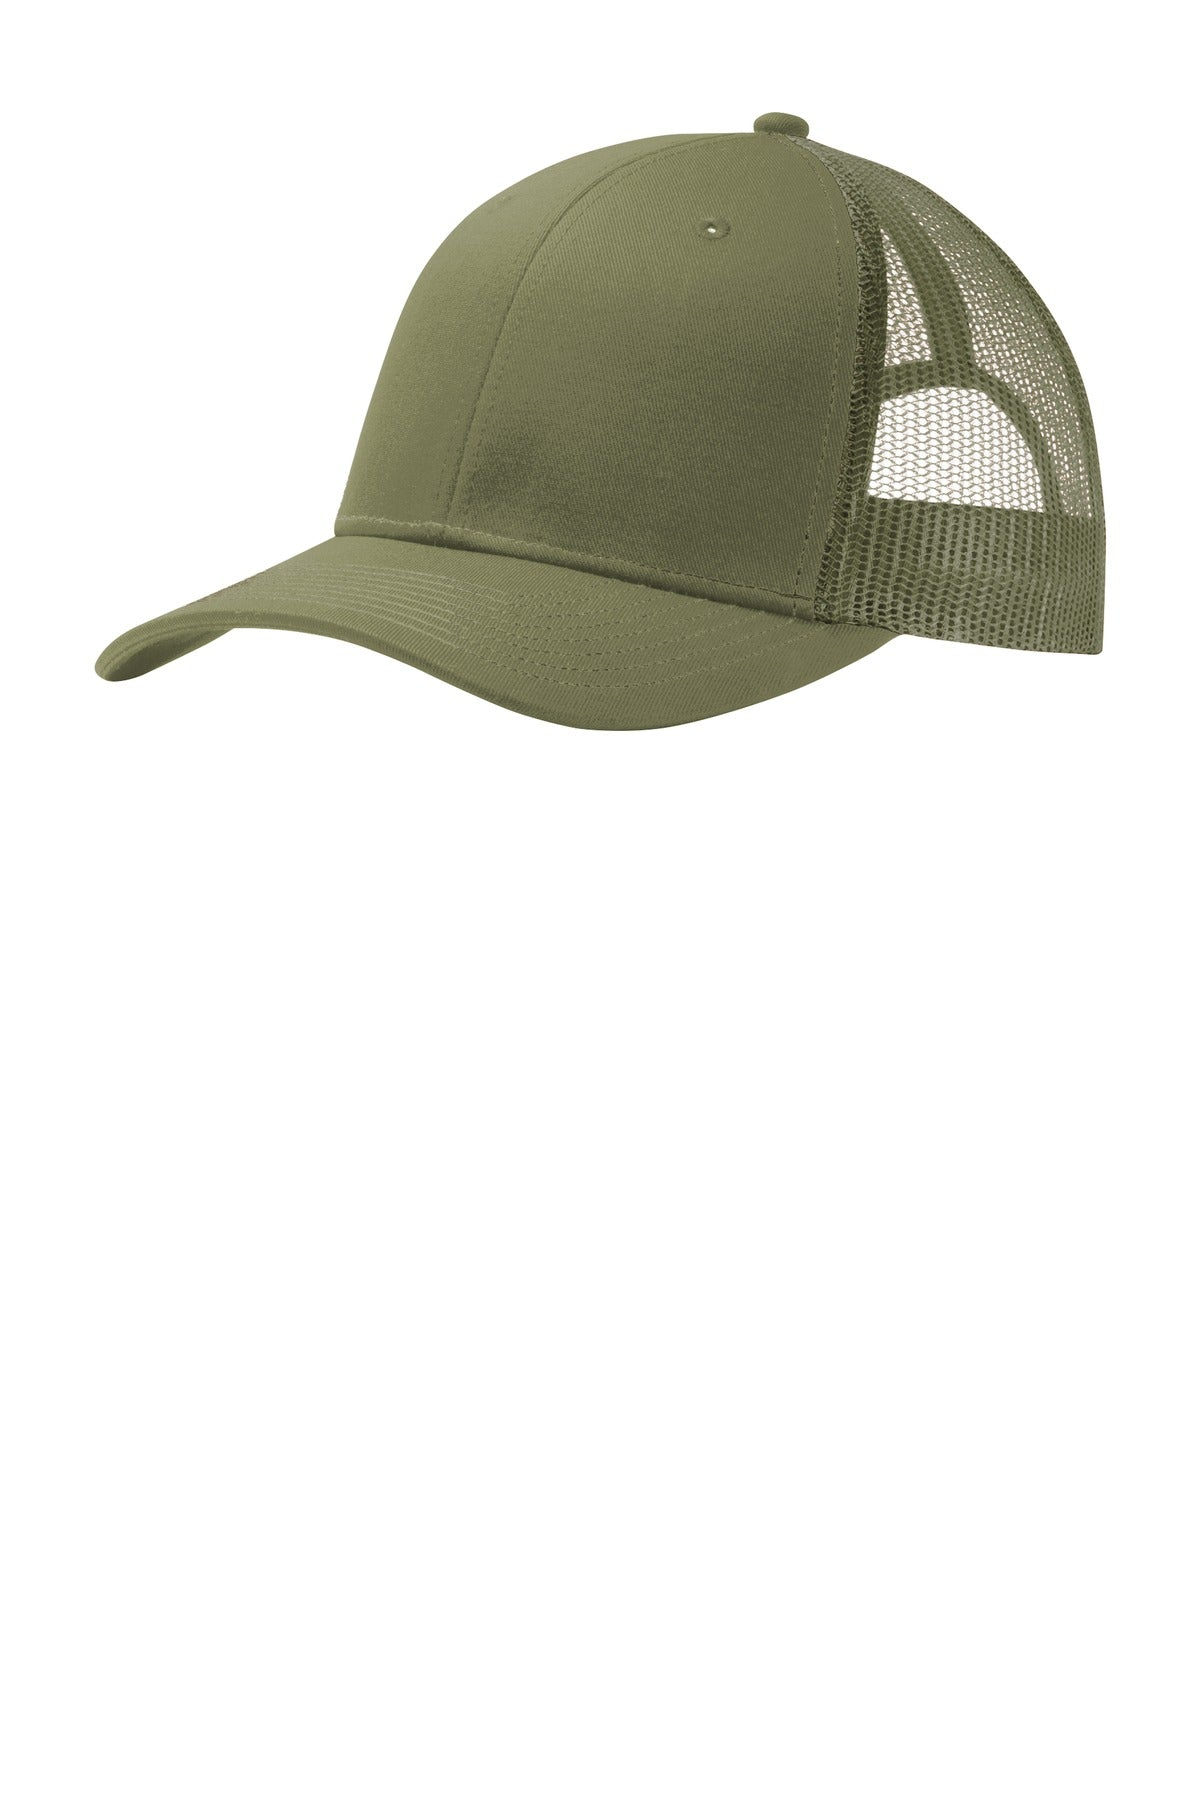 Olive Drab Green Port Authority Snapback Trucker Cap